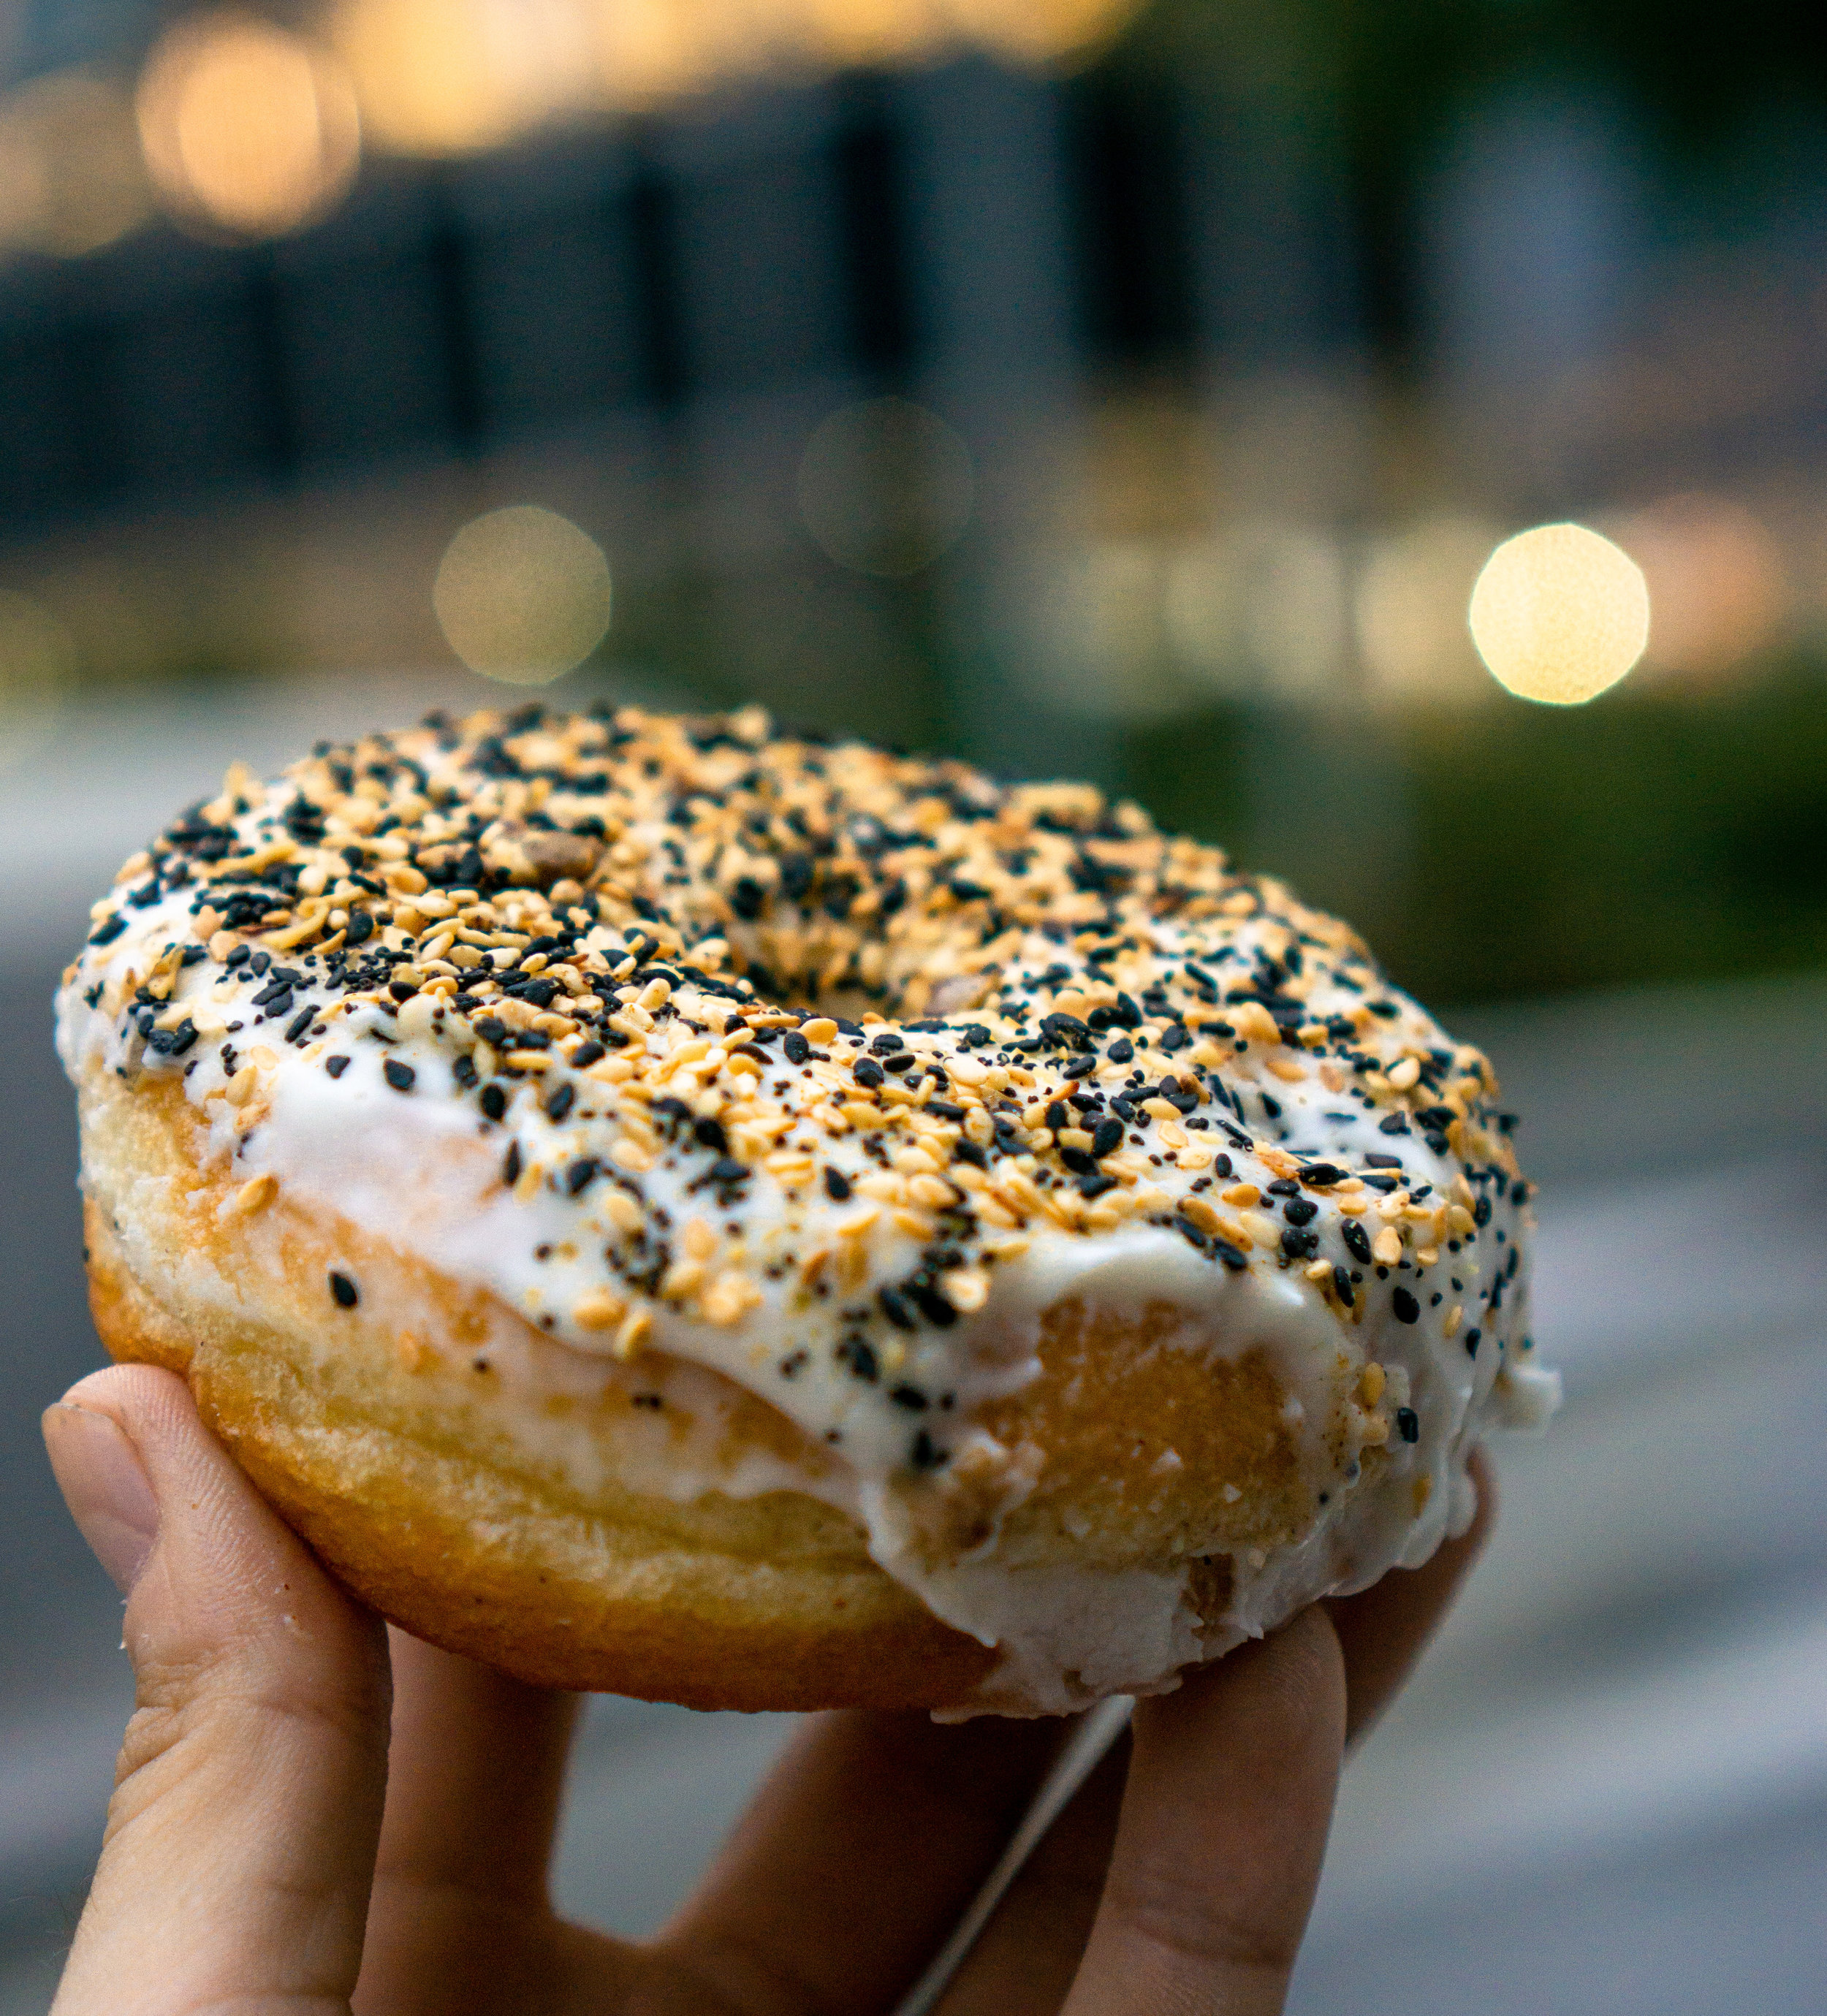 I'm not entirely sure I can describe to you how irrelevant bagels have become to me since this doughnut